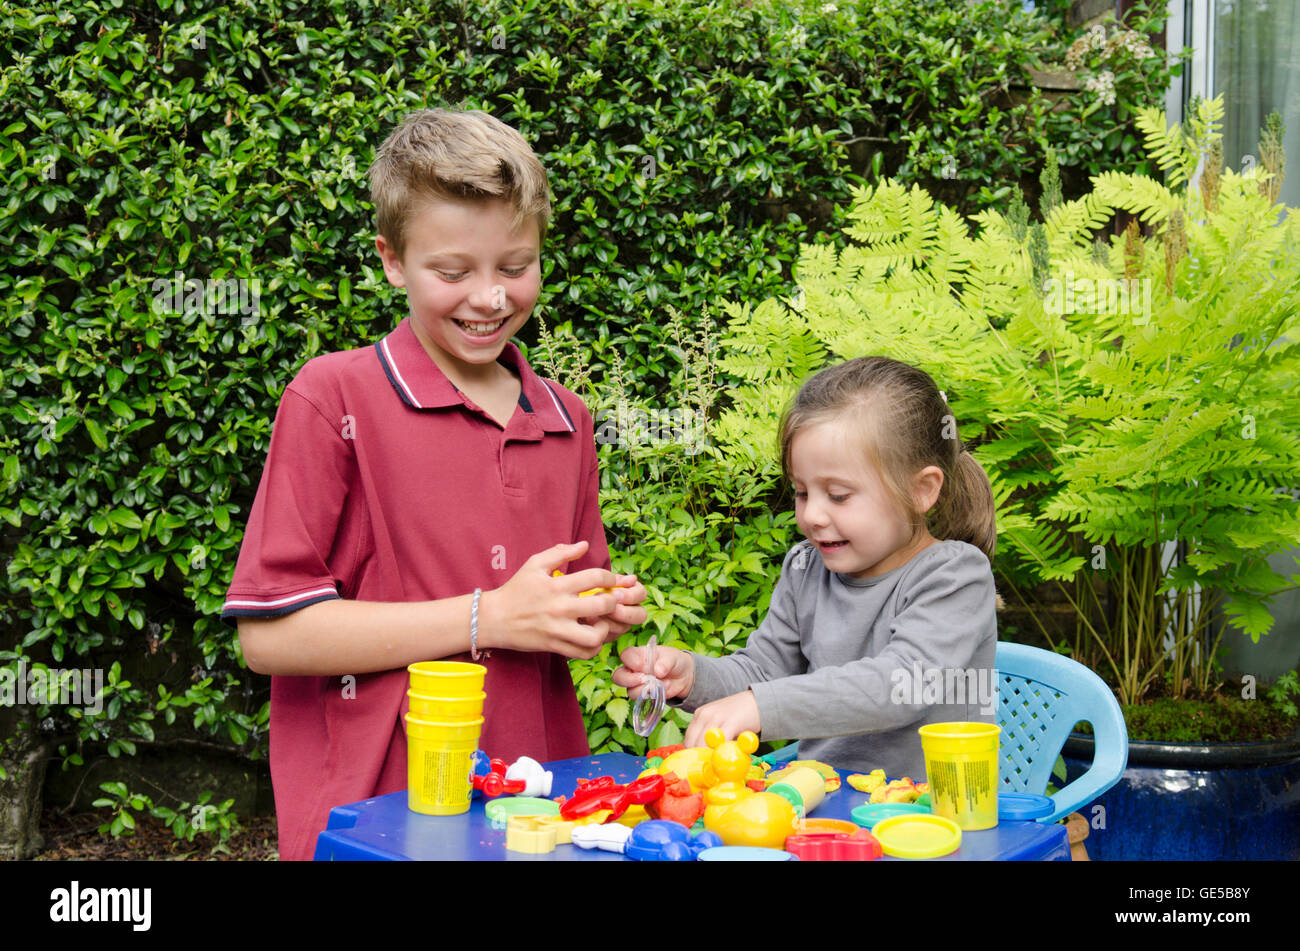 Three year old girl and ten-year-old boy, brother and sister, playing with Play-Doh modeling putty. UK. Outside - Stock Image